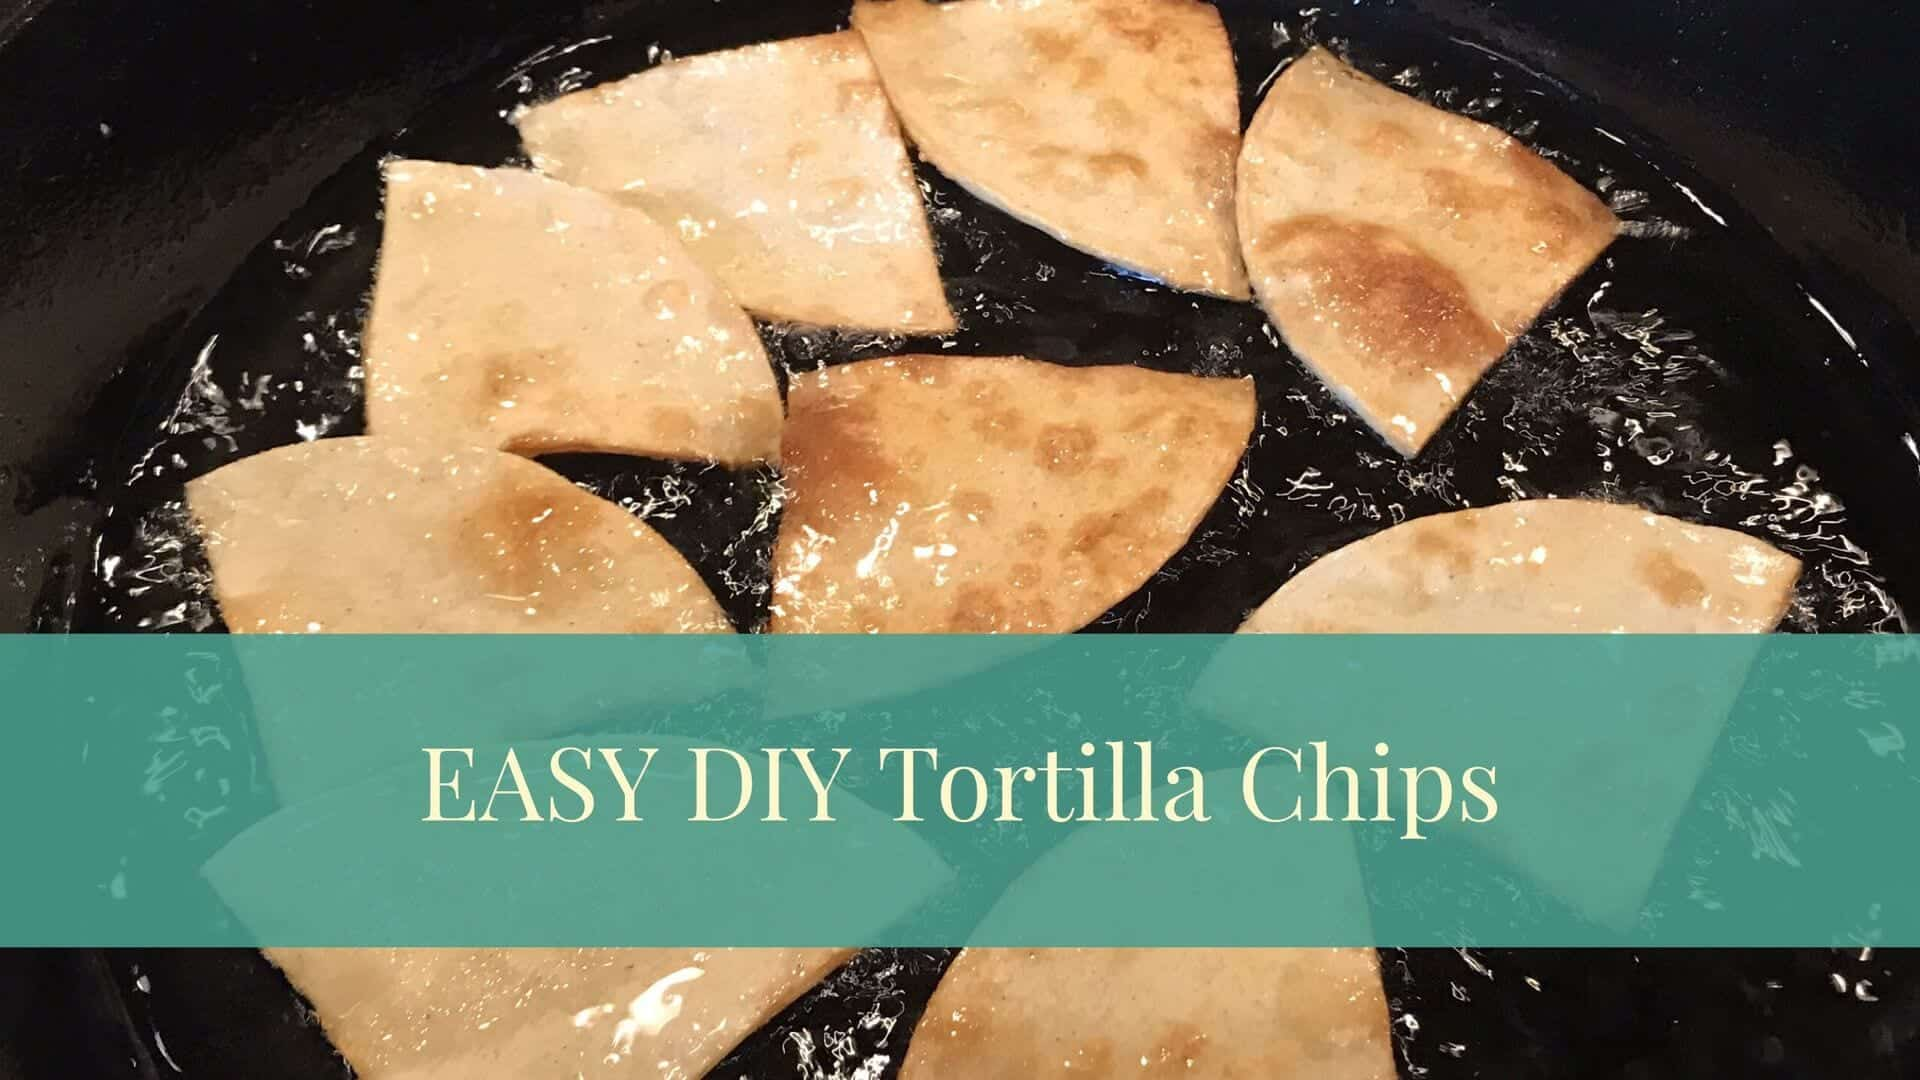 EASY DIY Tortilla Chips!